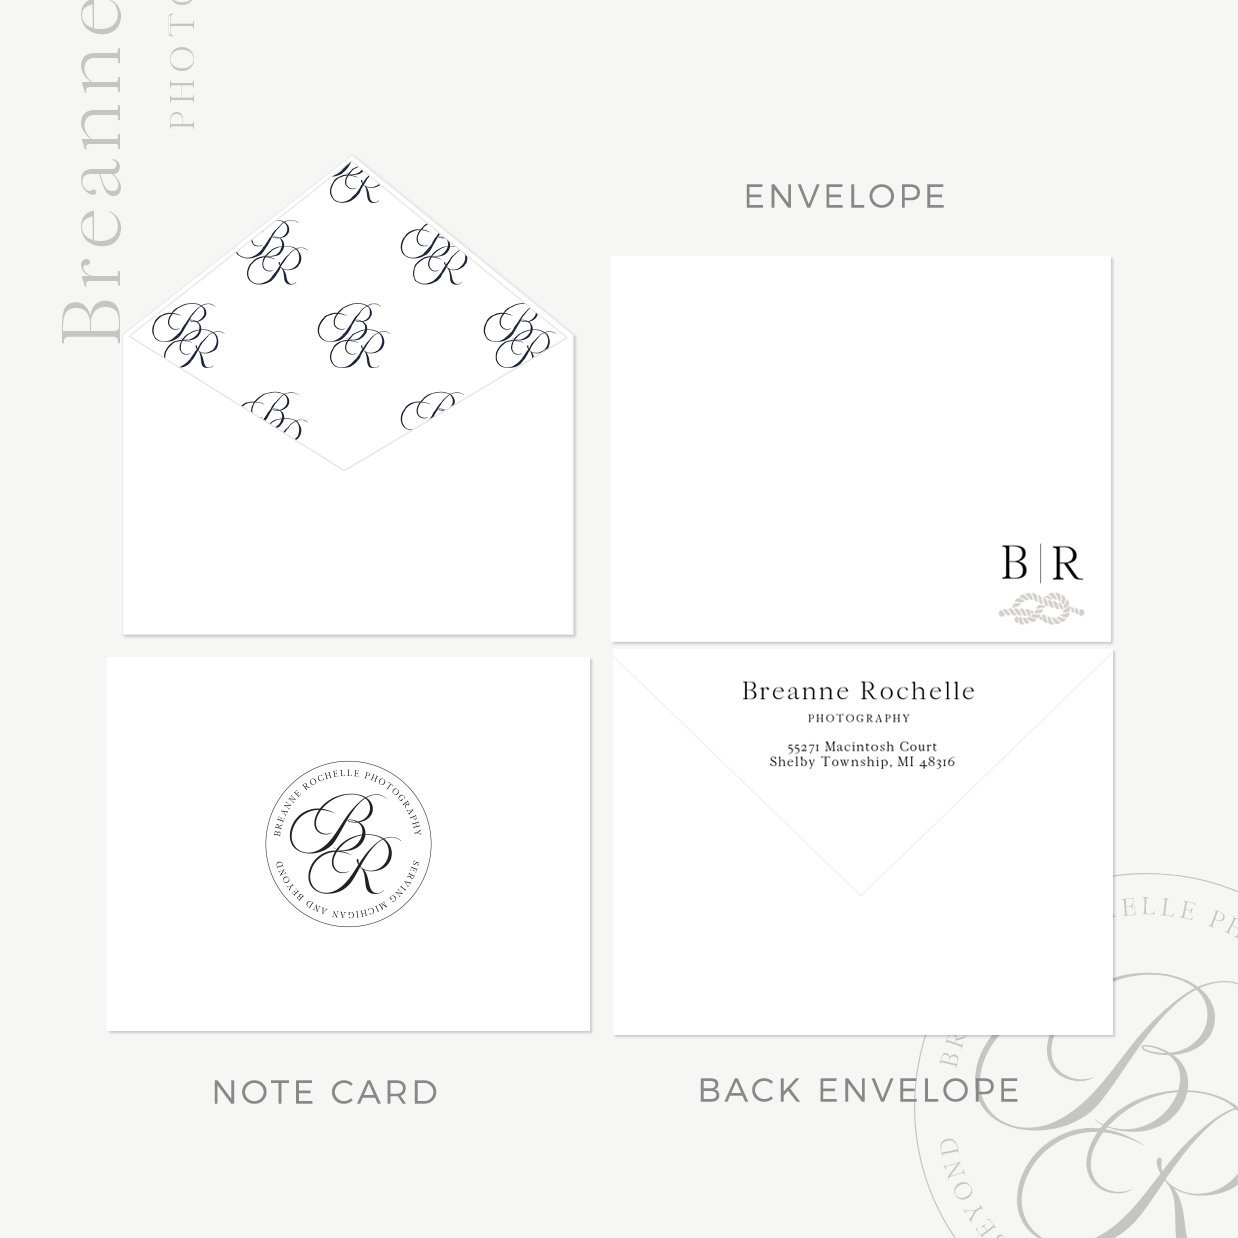 BreanneRochelle_Envelope_Notecard_v02